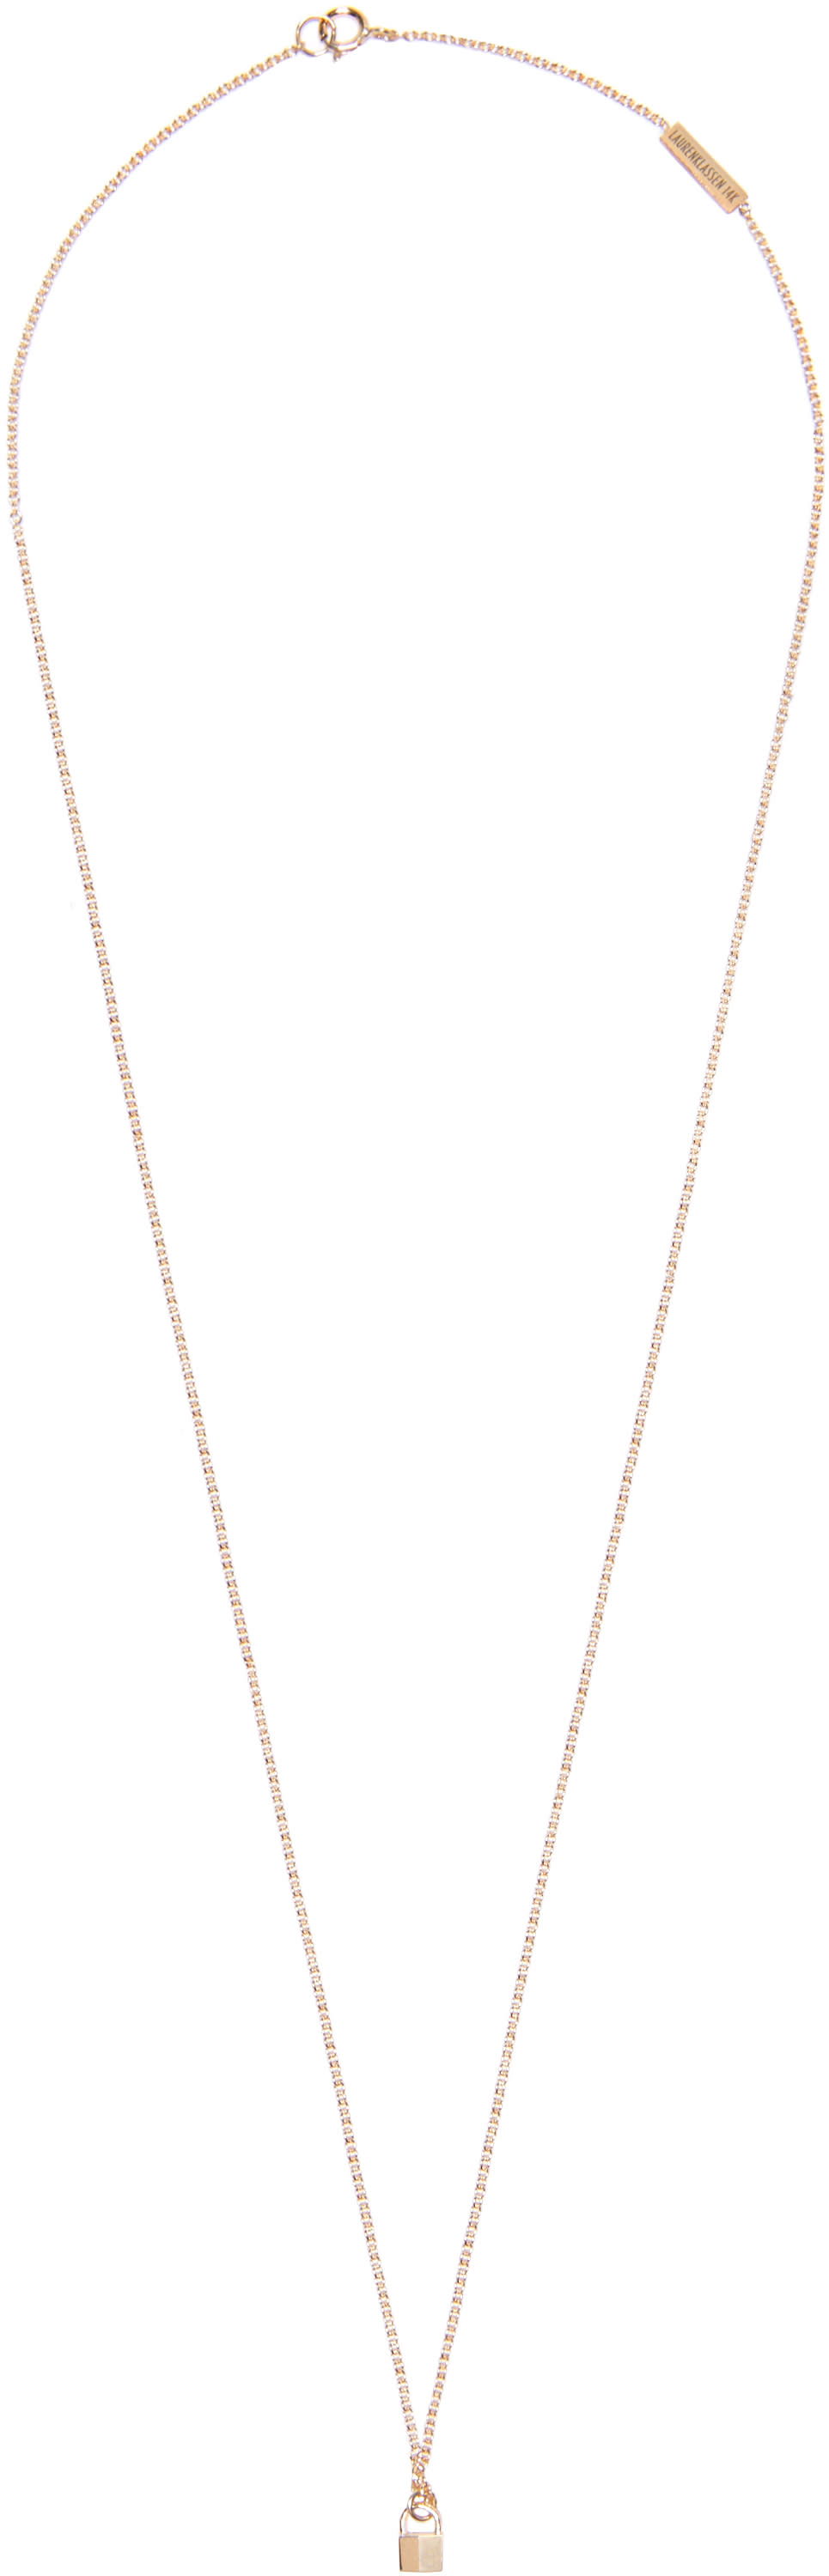 Lauren Klassen Gold Tiny Padlock Necklace